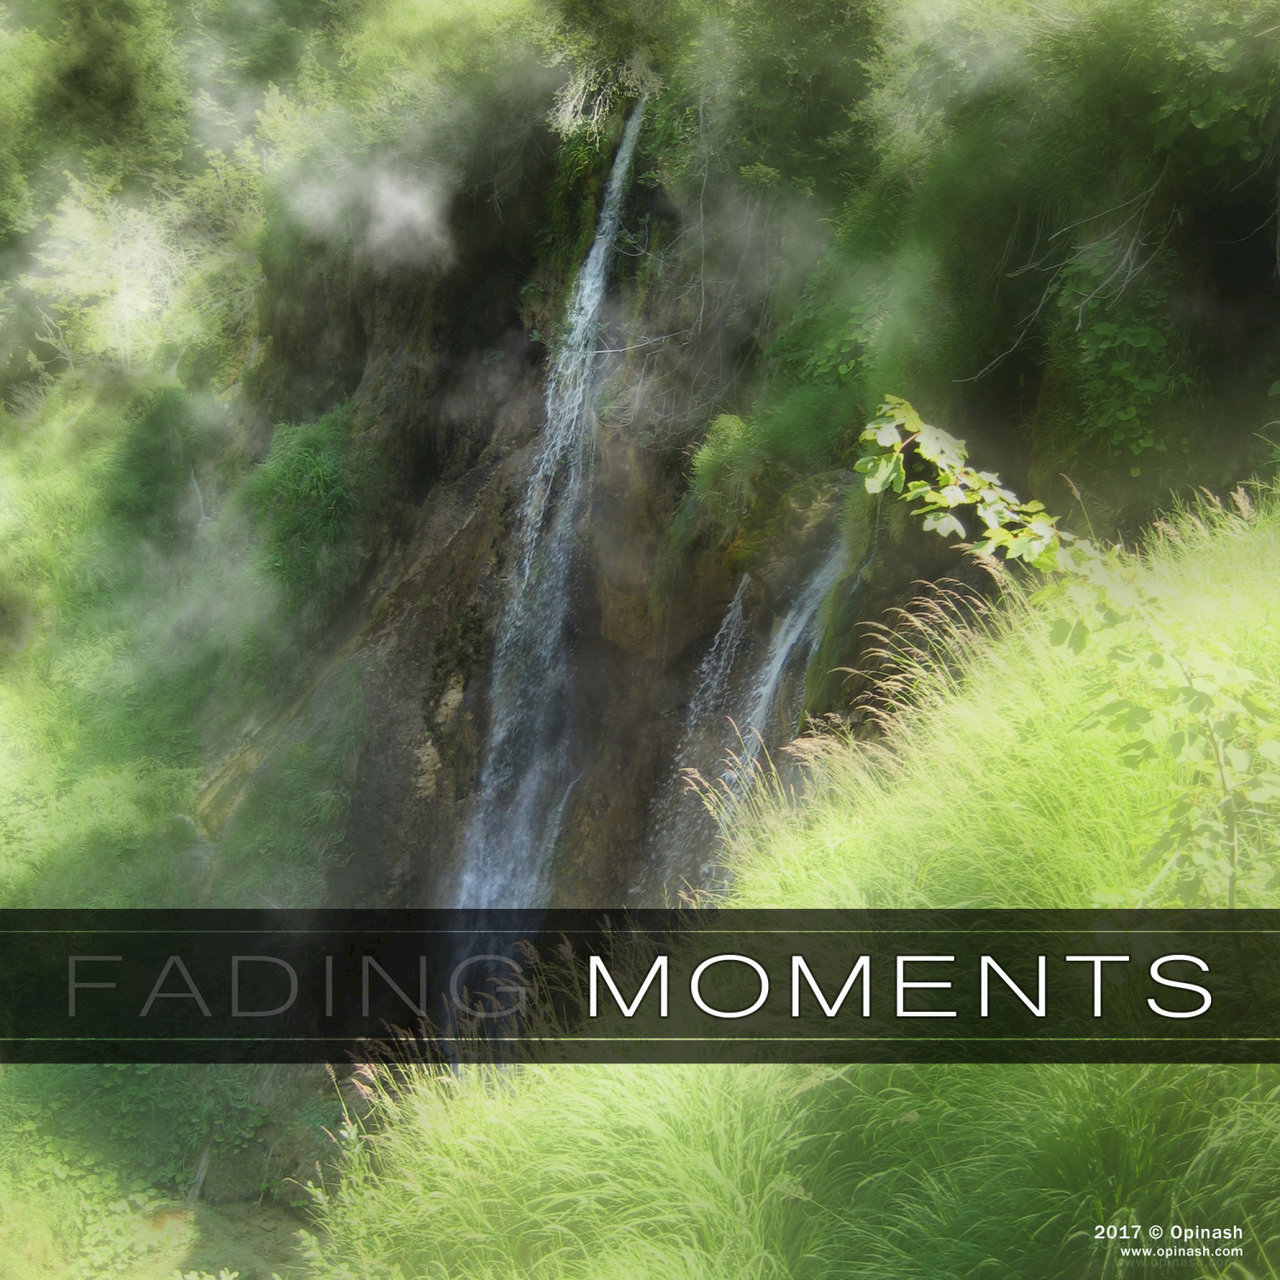 Fading Moments